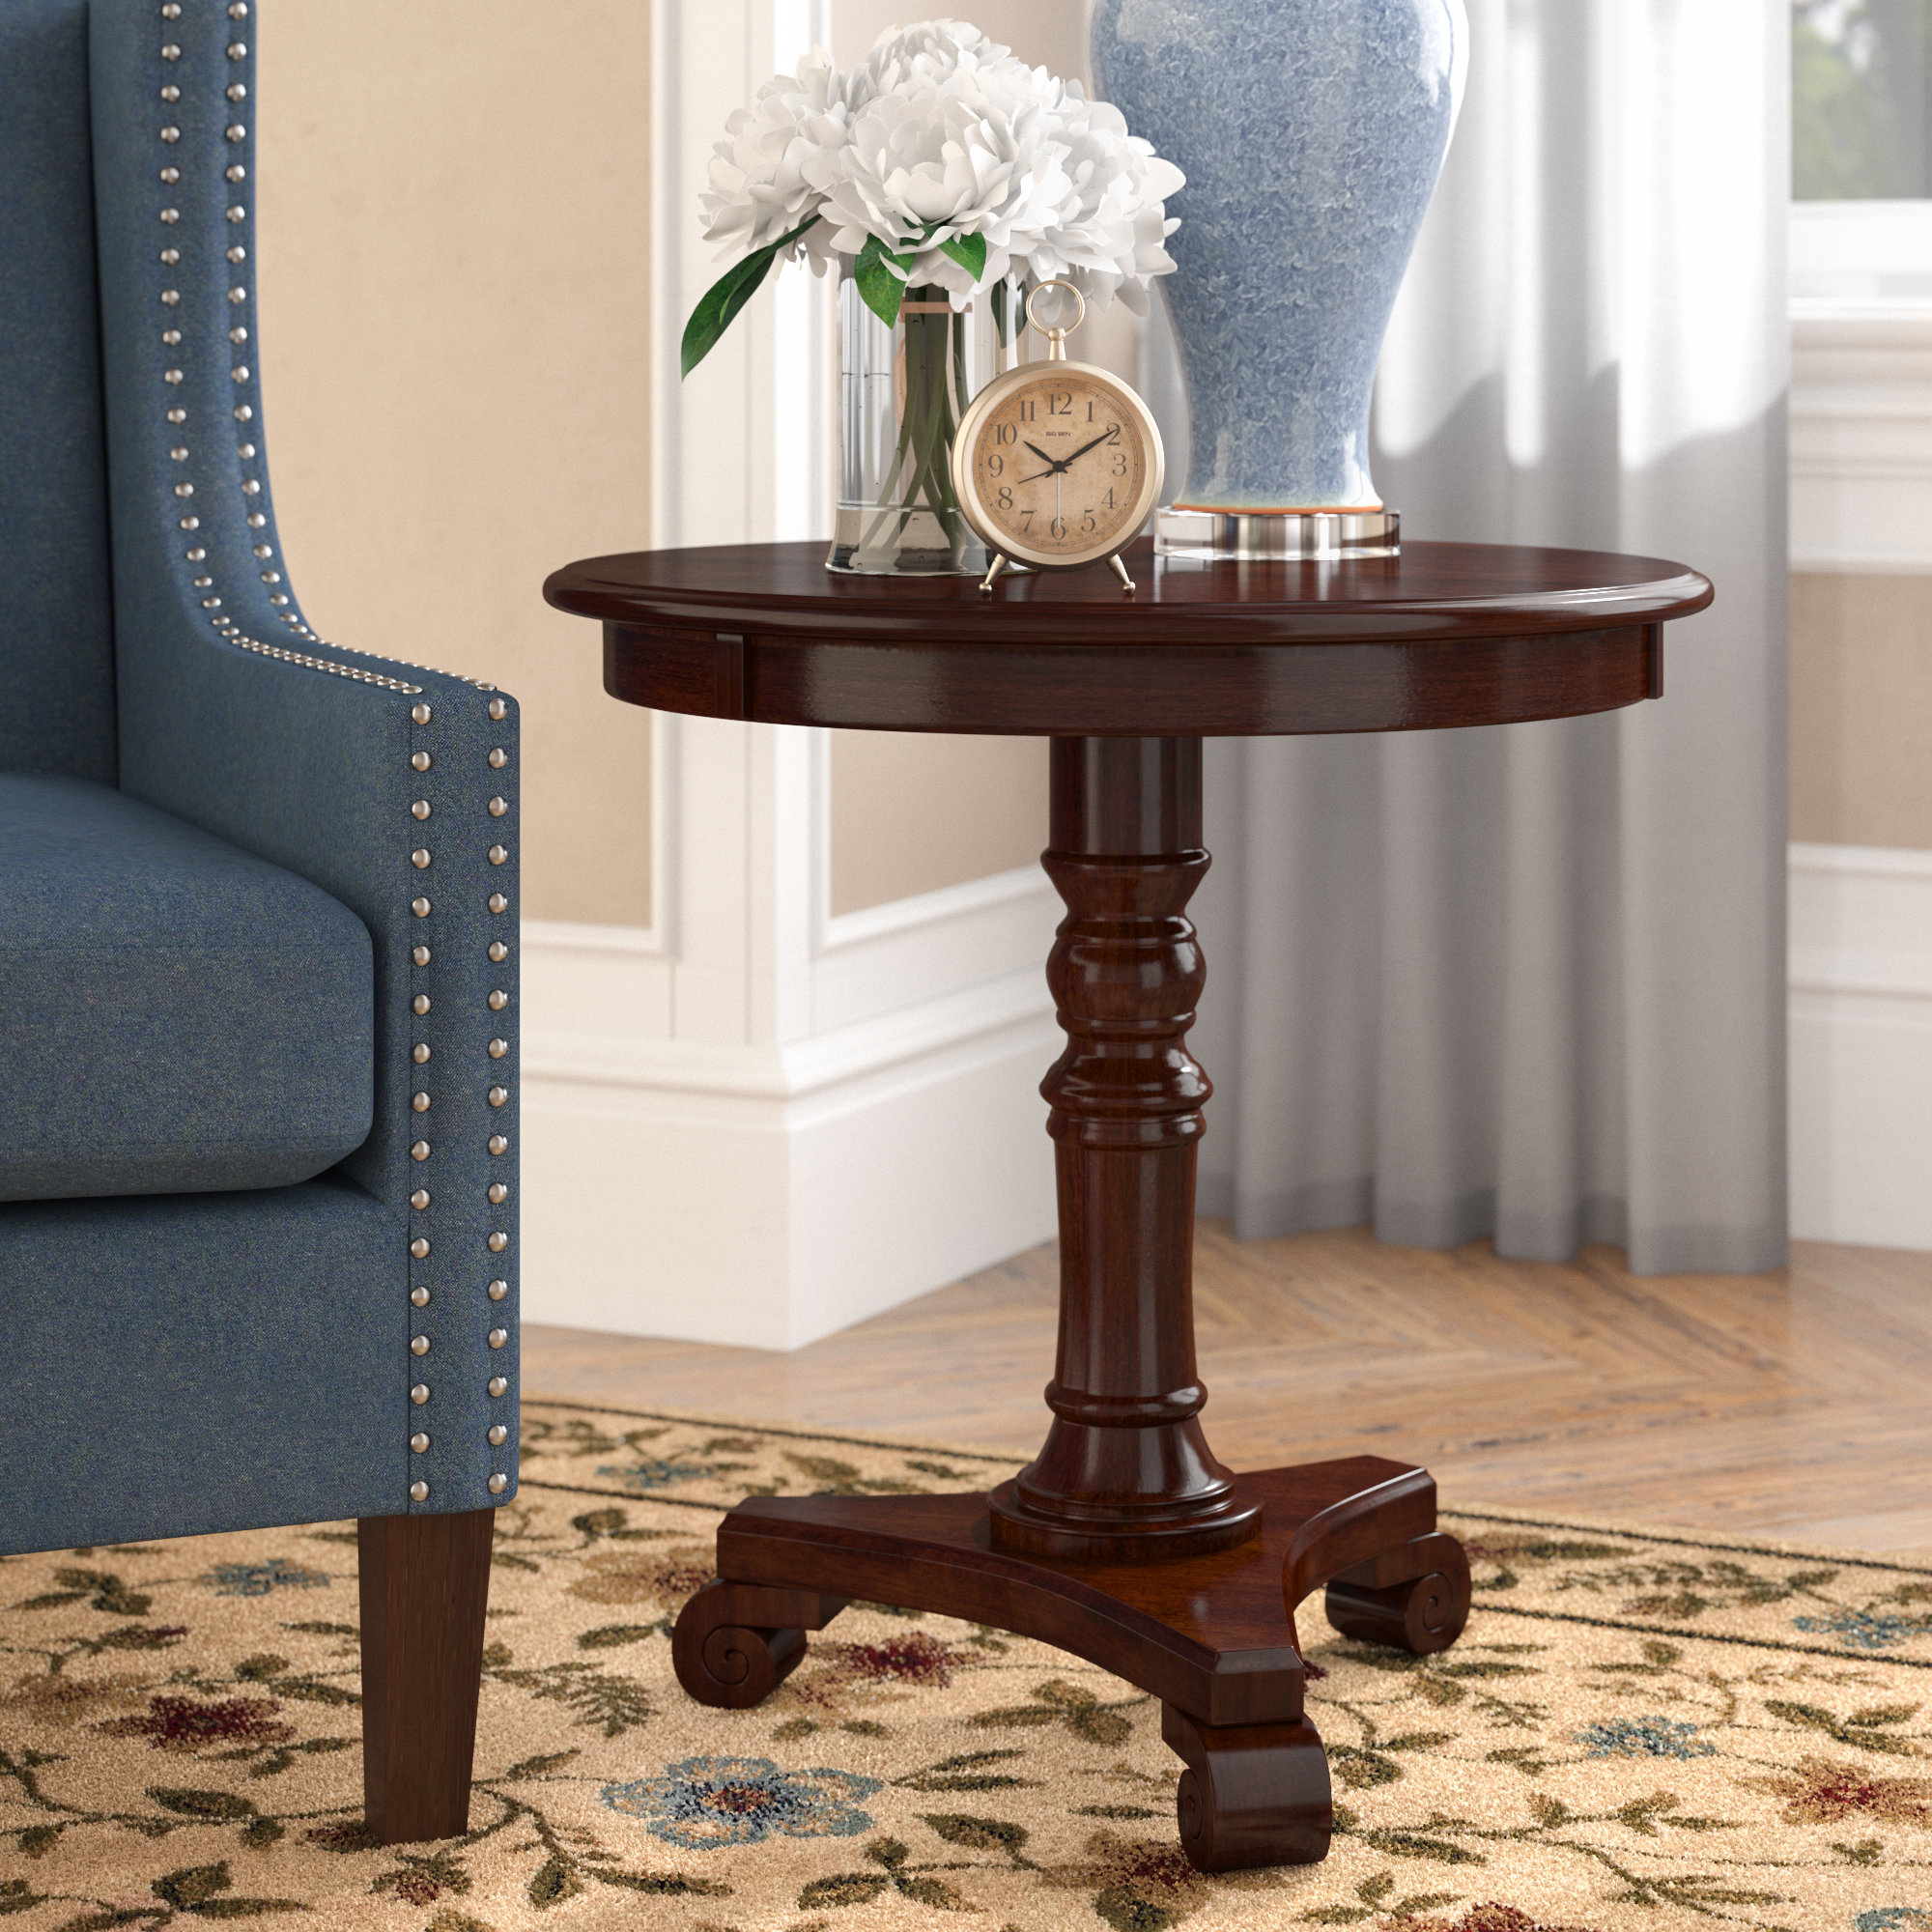 curved accent table moravian classic accents end ifrane save small silver side glass white wood mirror round fitted tablecloths whole lighting fixtures nautical light indoor pier